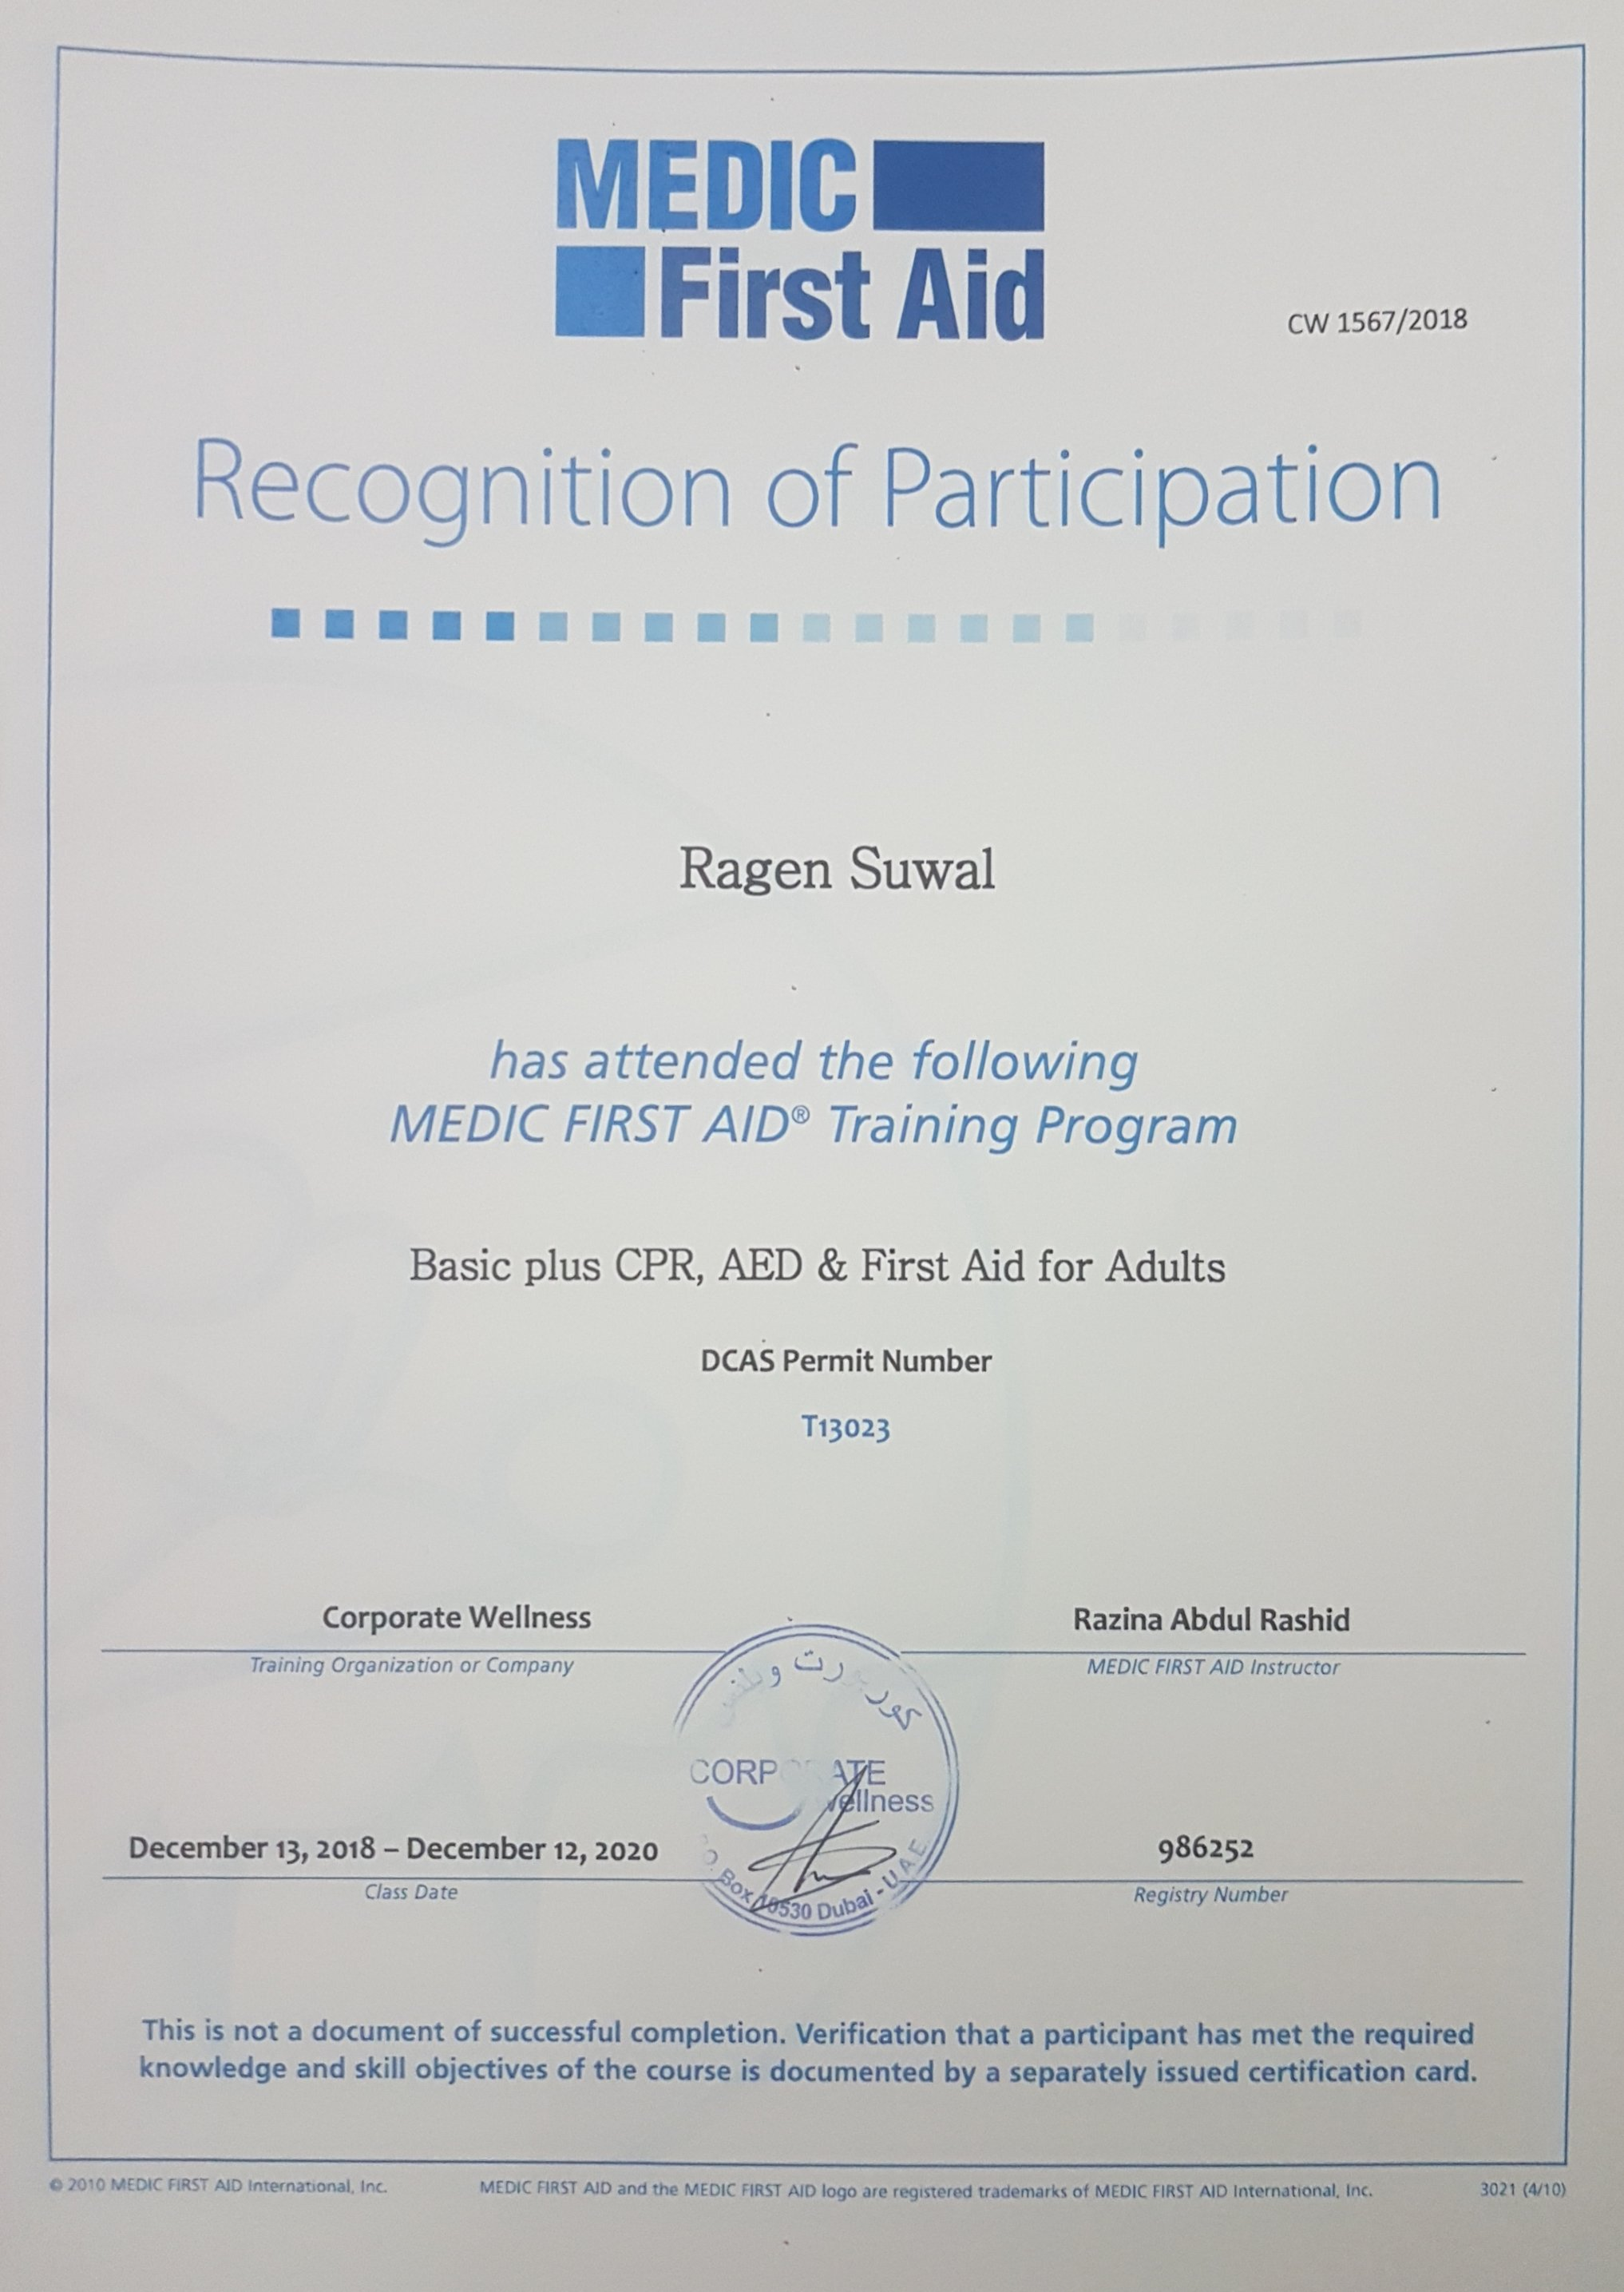 First Aid Training Certificate.jpg